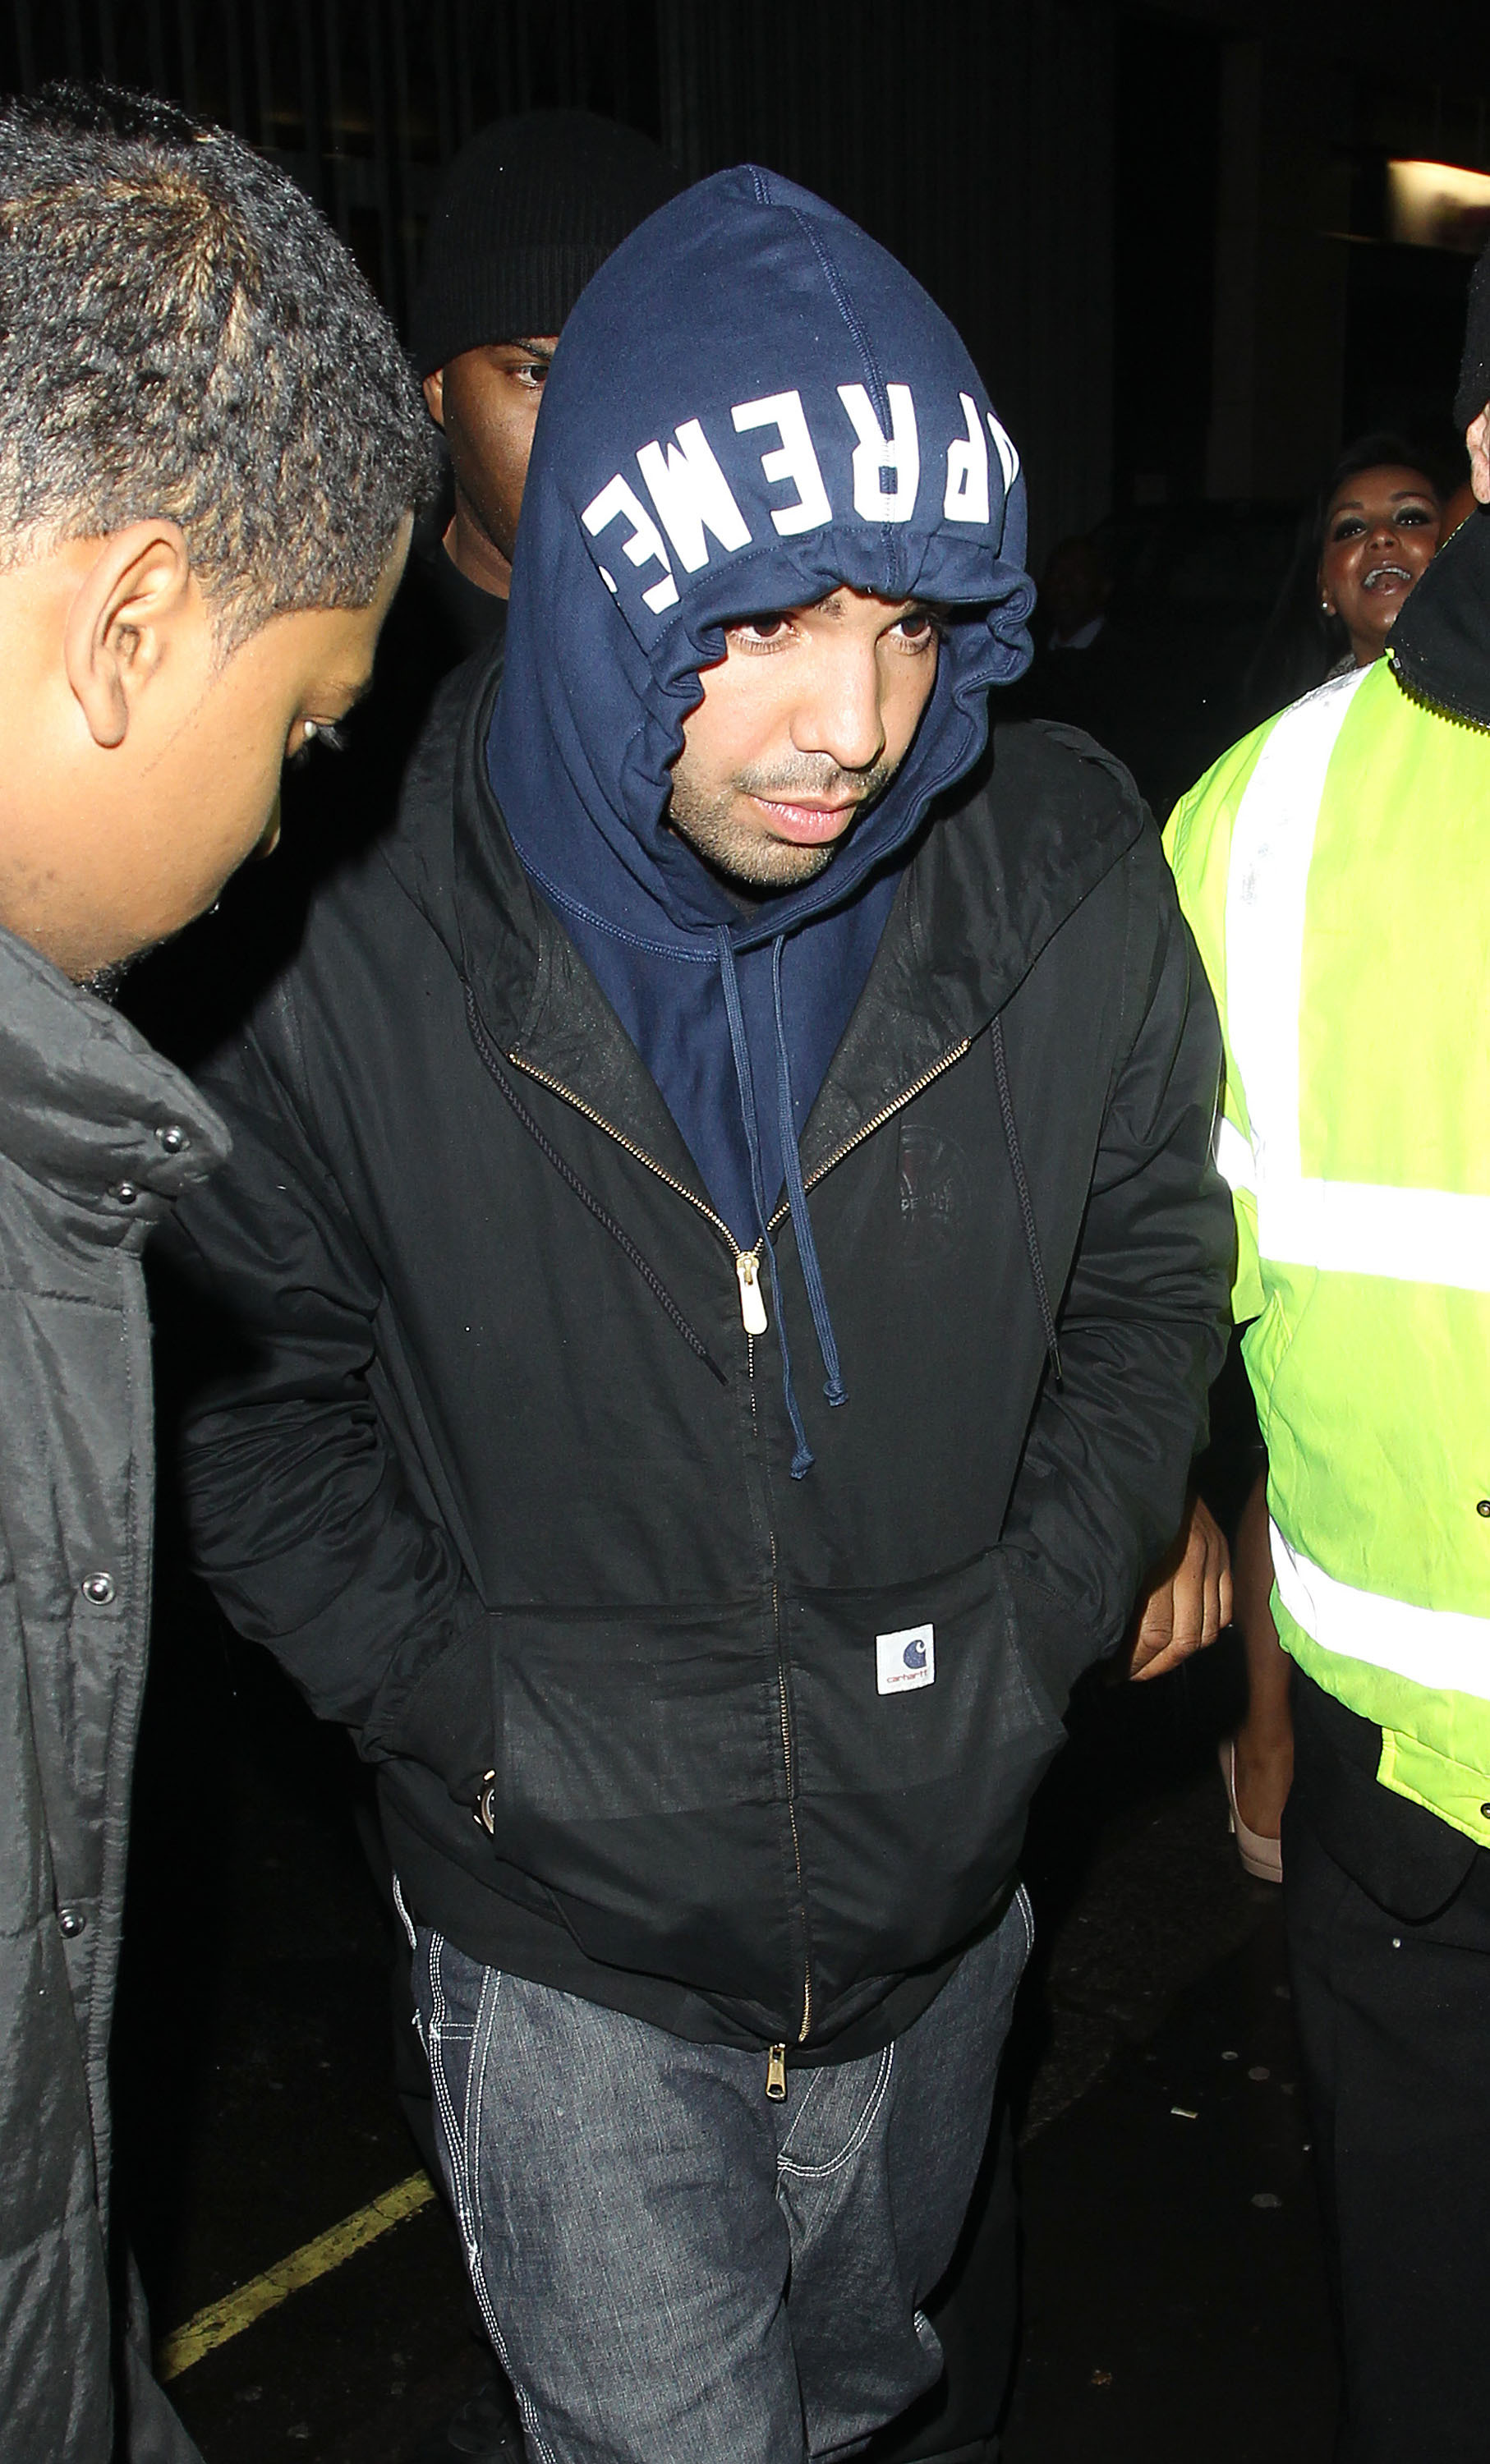 Rapper Drake                  arriving at Chinawhite nightclub                  London, England - 18.04.12                                    Featuring: Rapper Drake                  Where: London, United Kingdom                  When: 18 Apr 2012                  Credit: WENN